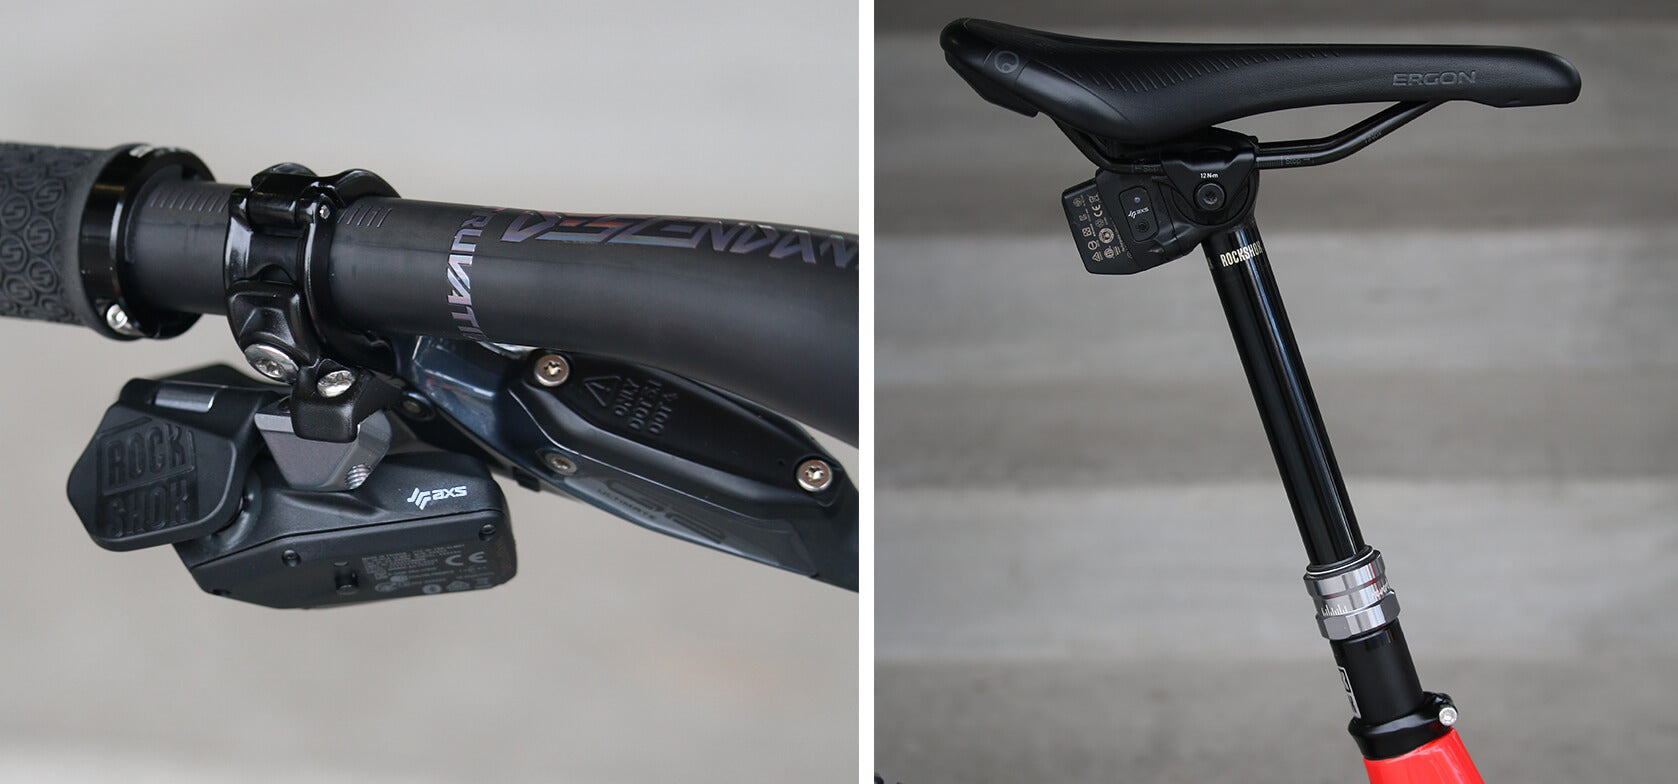 SRAM Reverb AXS Wireless Dropper Seatpost - Contender Bicycles